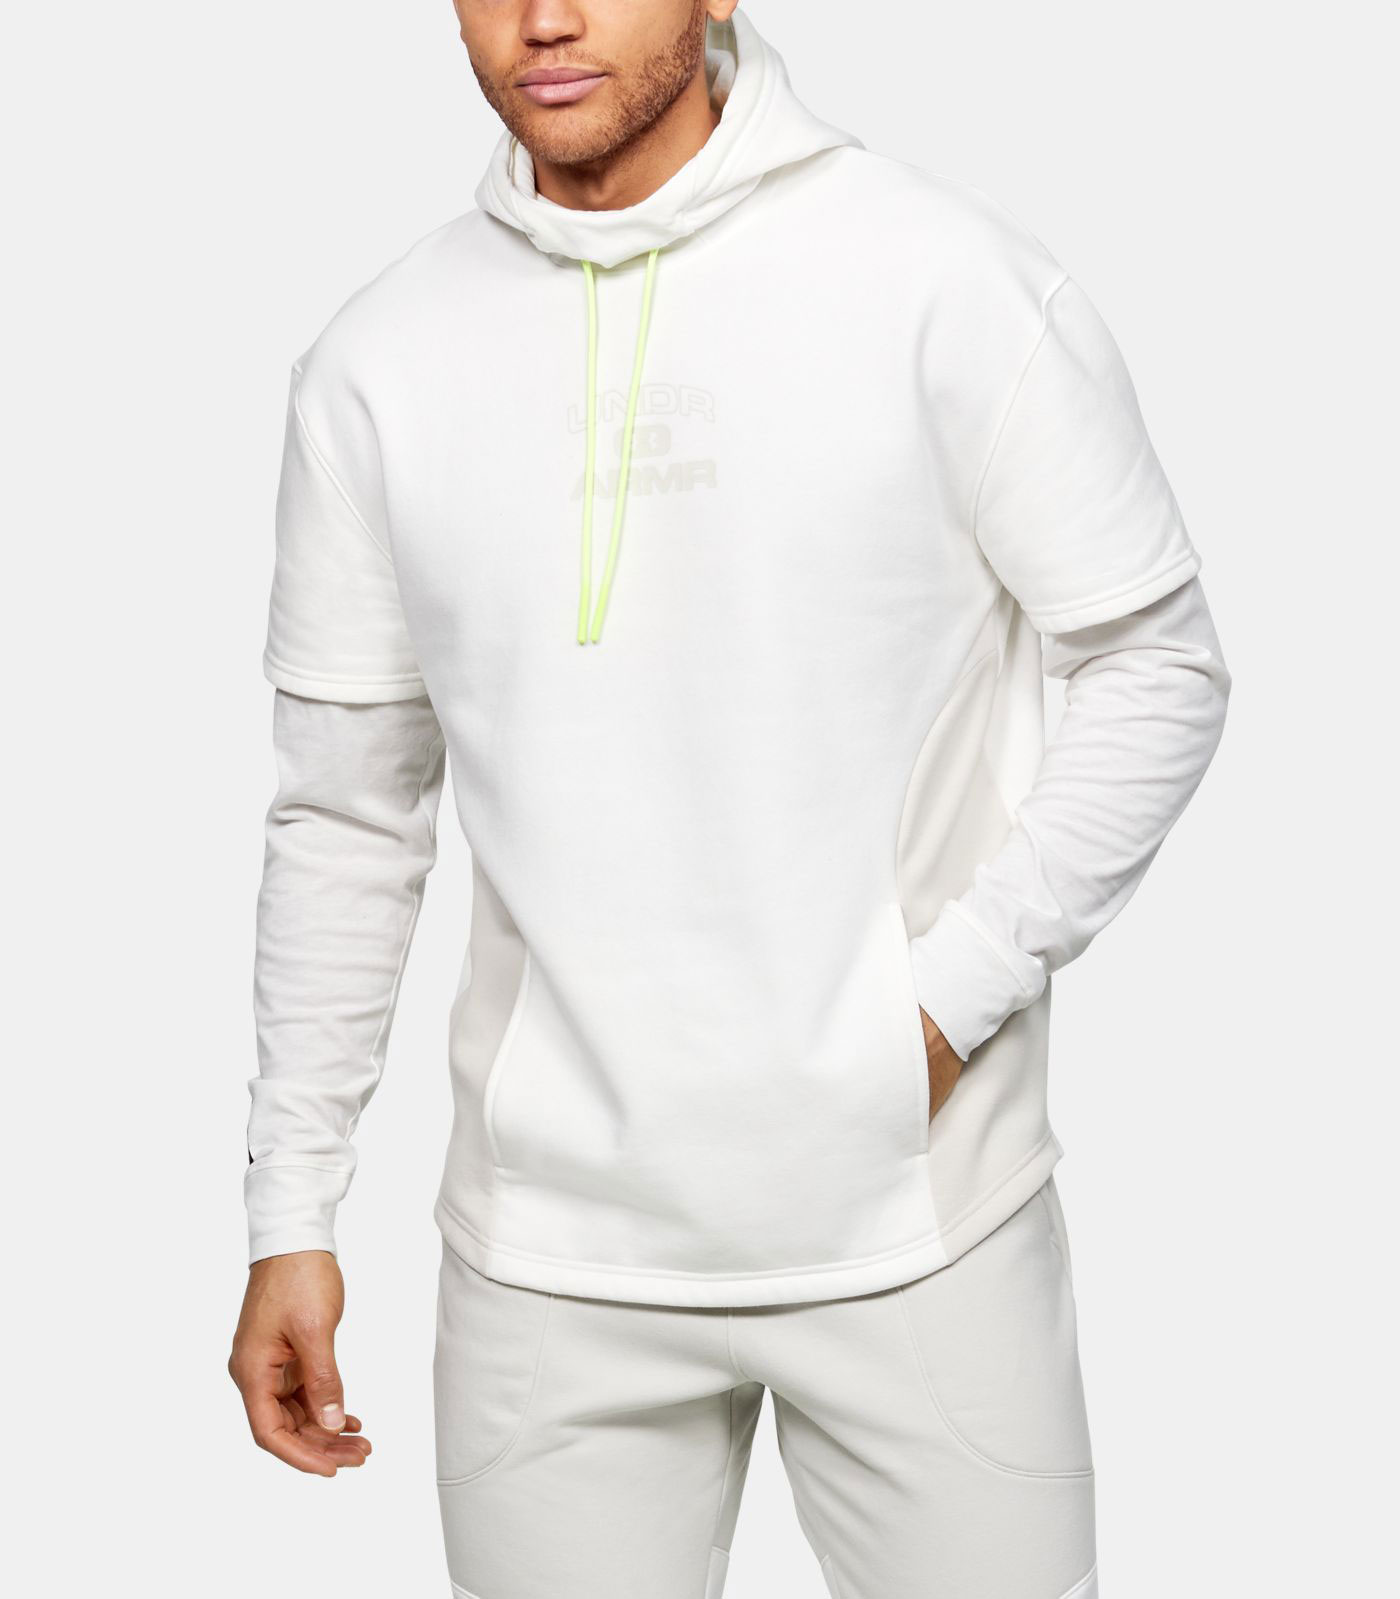 curry-7-our-history-hoodie-1